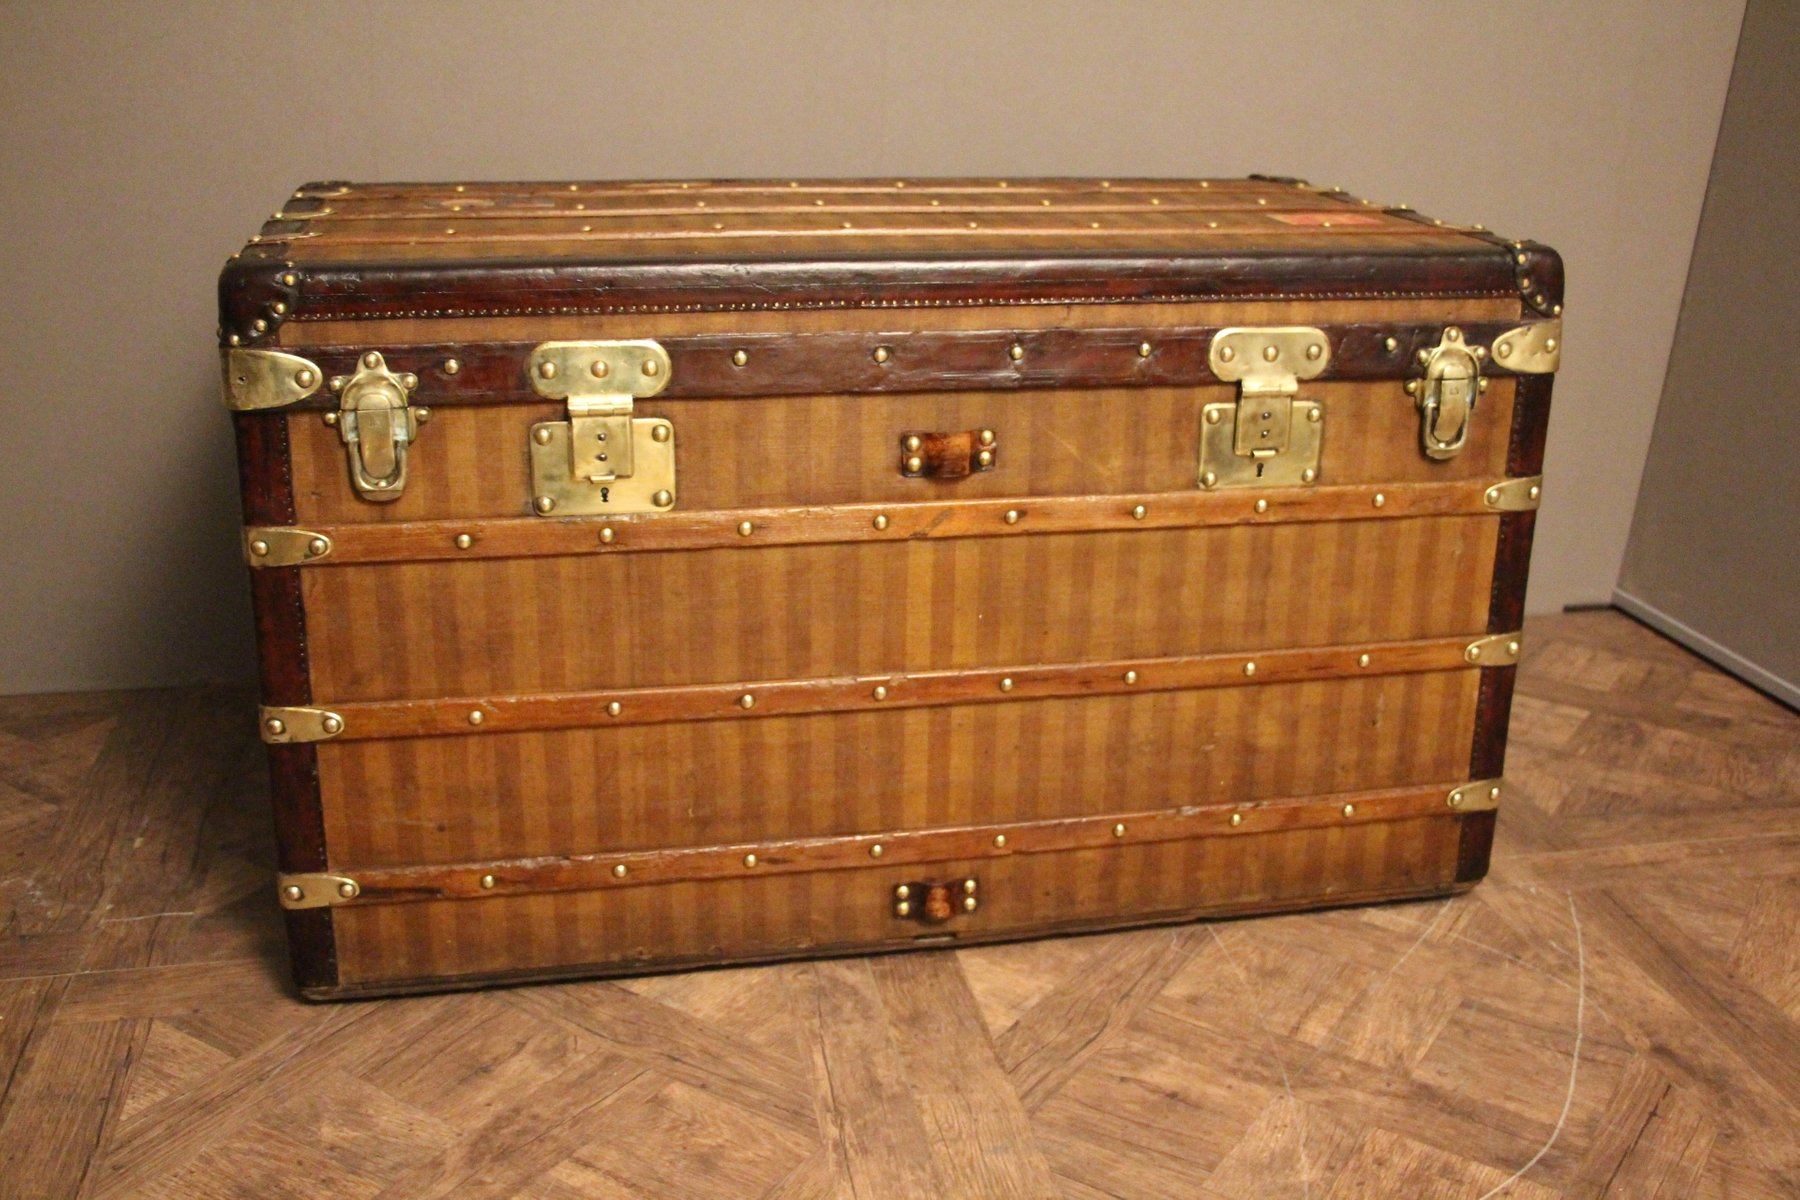 Steamer Trunk Furniture Antique Striped Canvas Steamer Trunk From Louis Vuitton For Sale